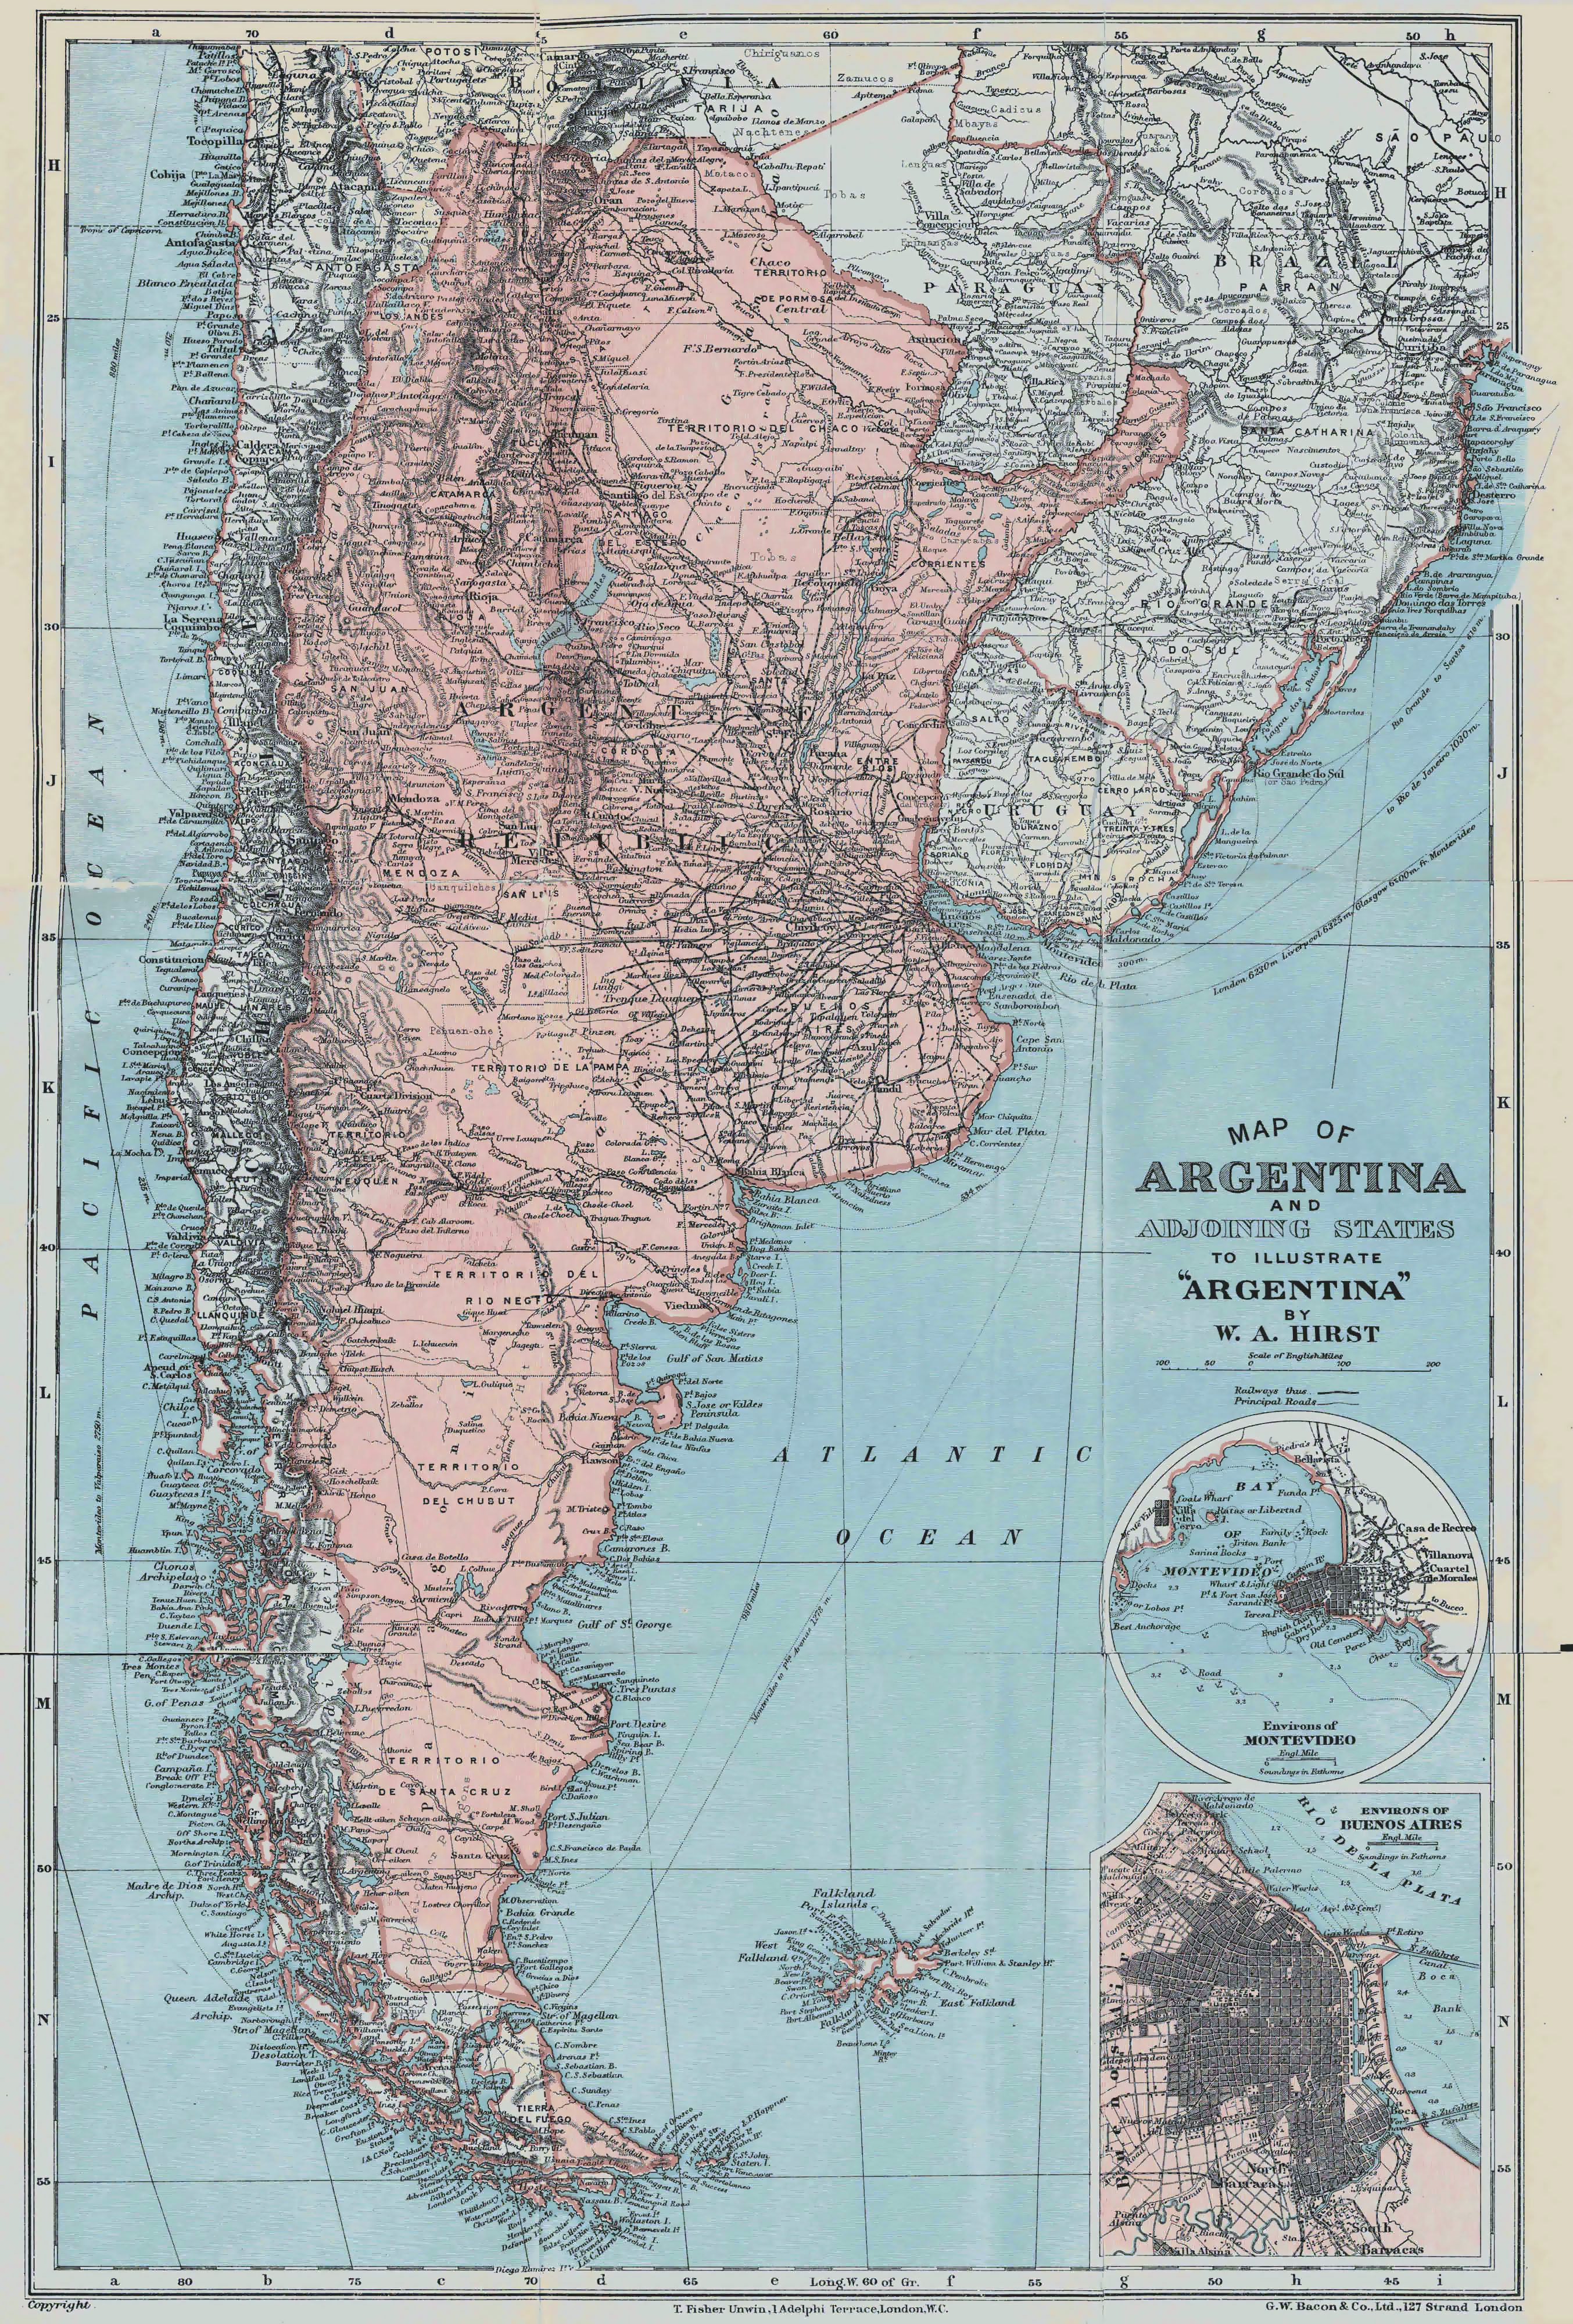 Large Detailed Old Map Of Argentina Argentina South - Argentina map detailed